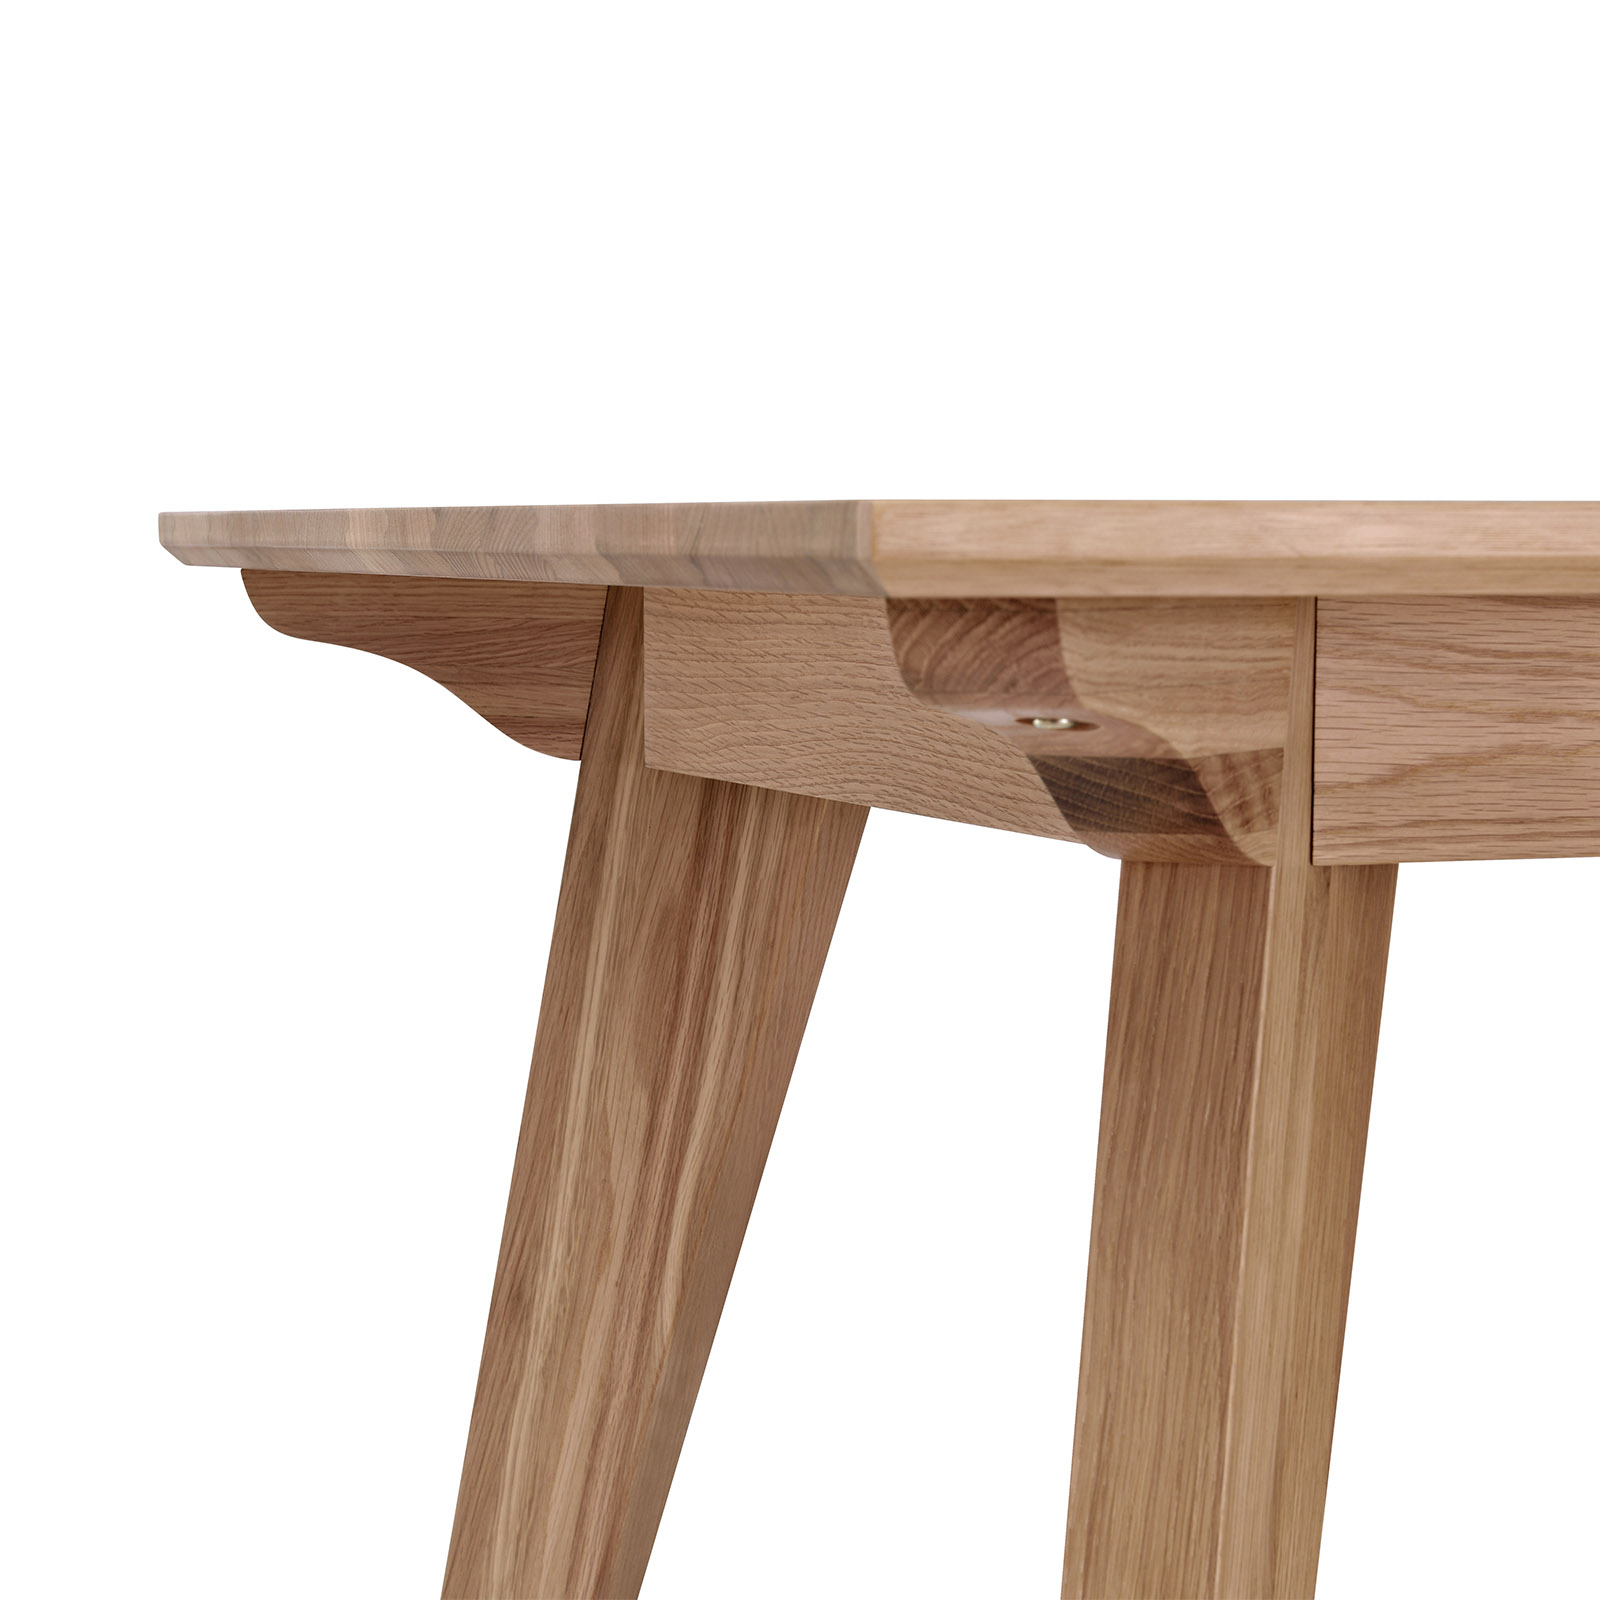 Alison white oak natural veneer dining table modern design - Oak veneer dining table ...